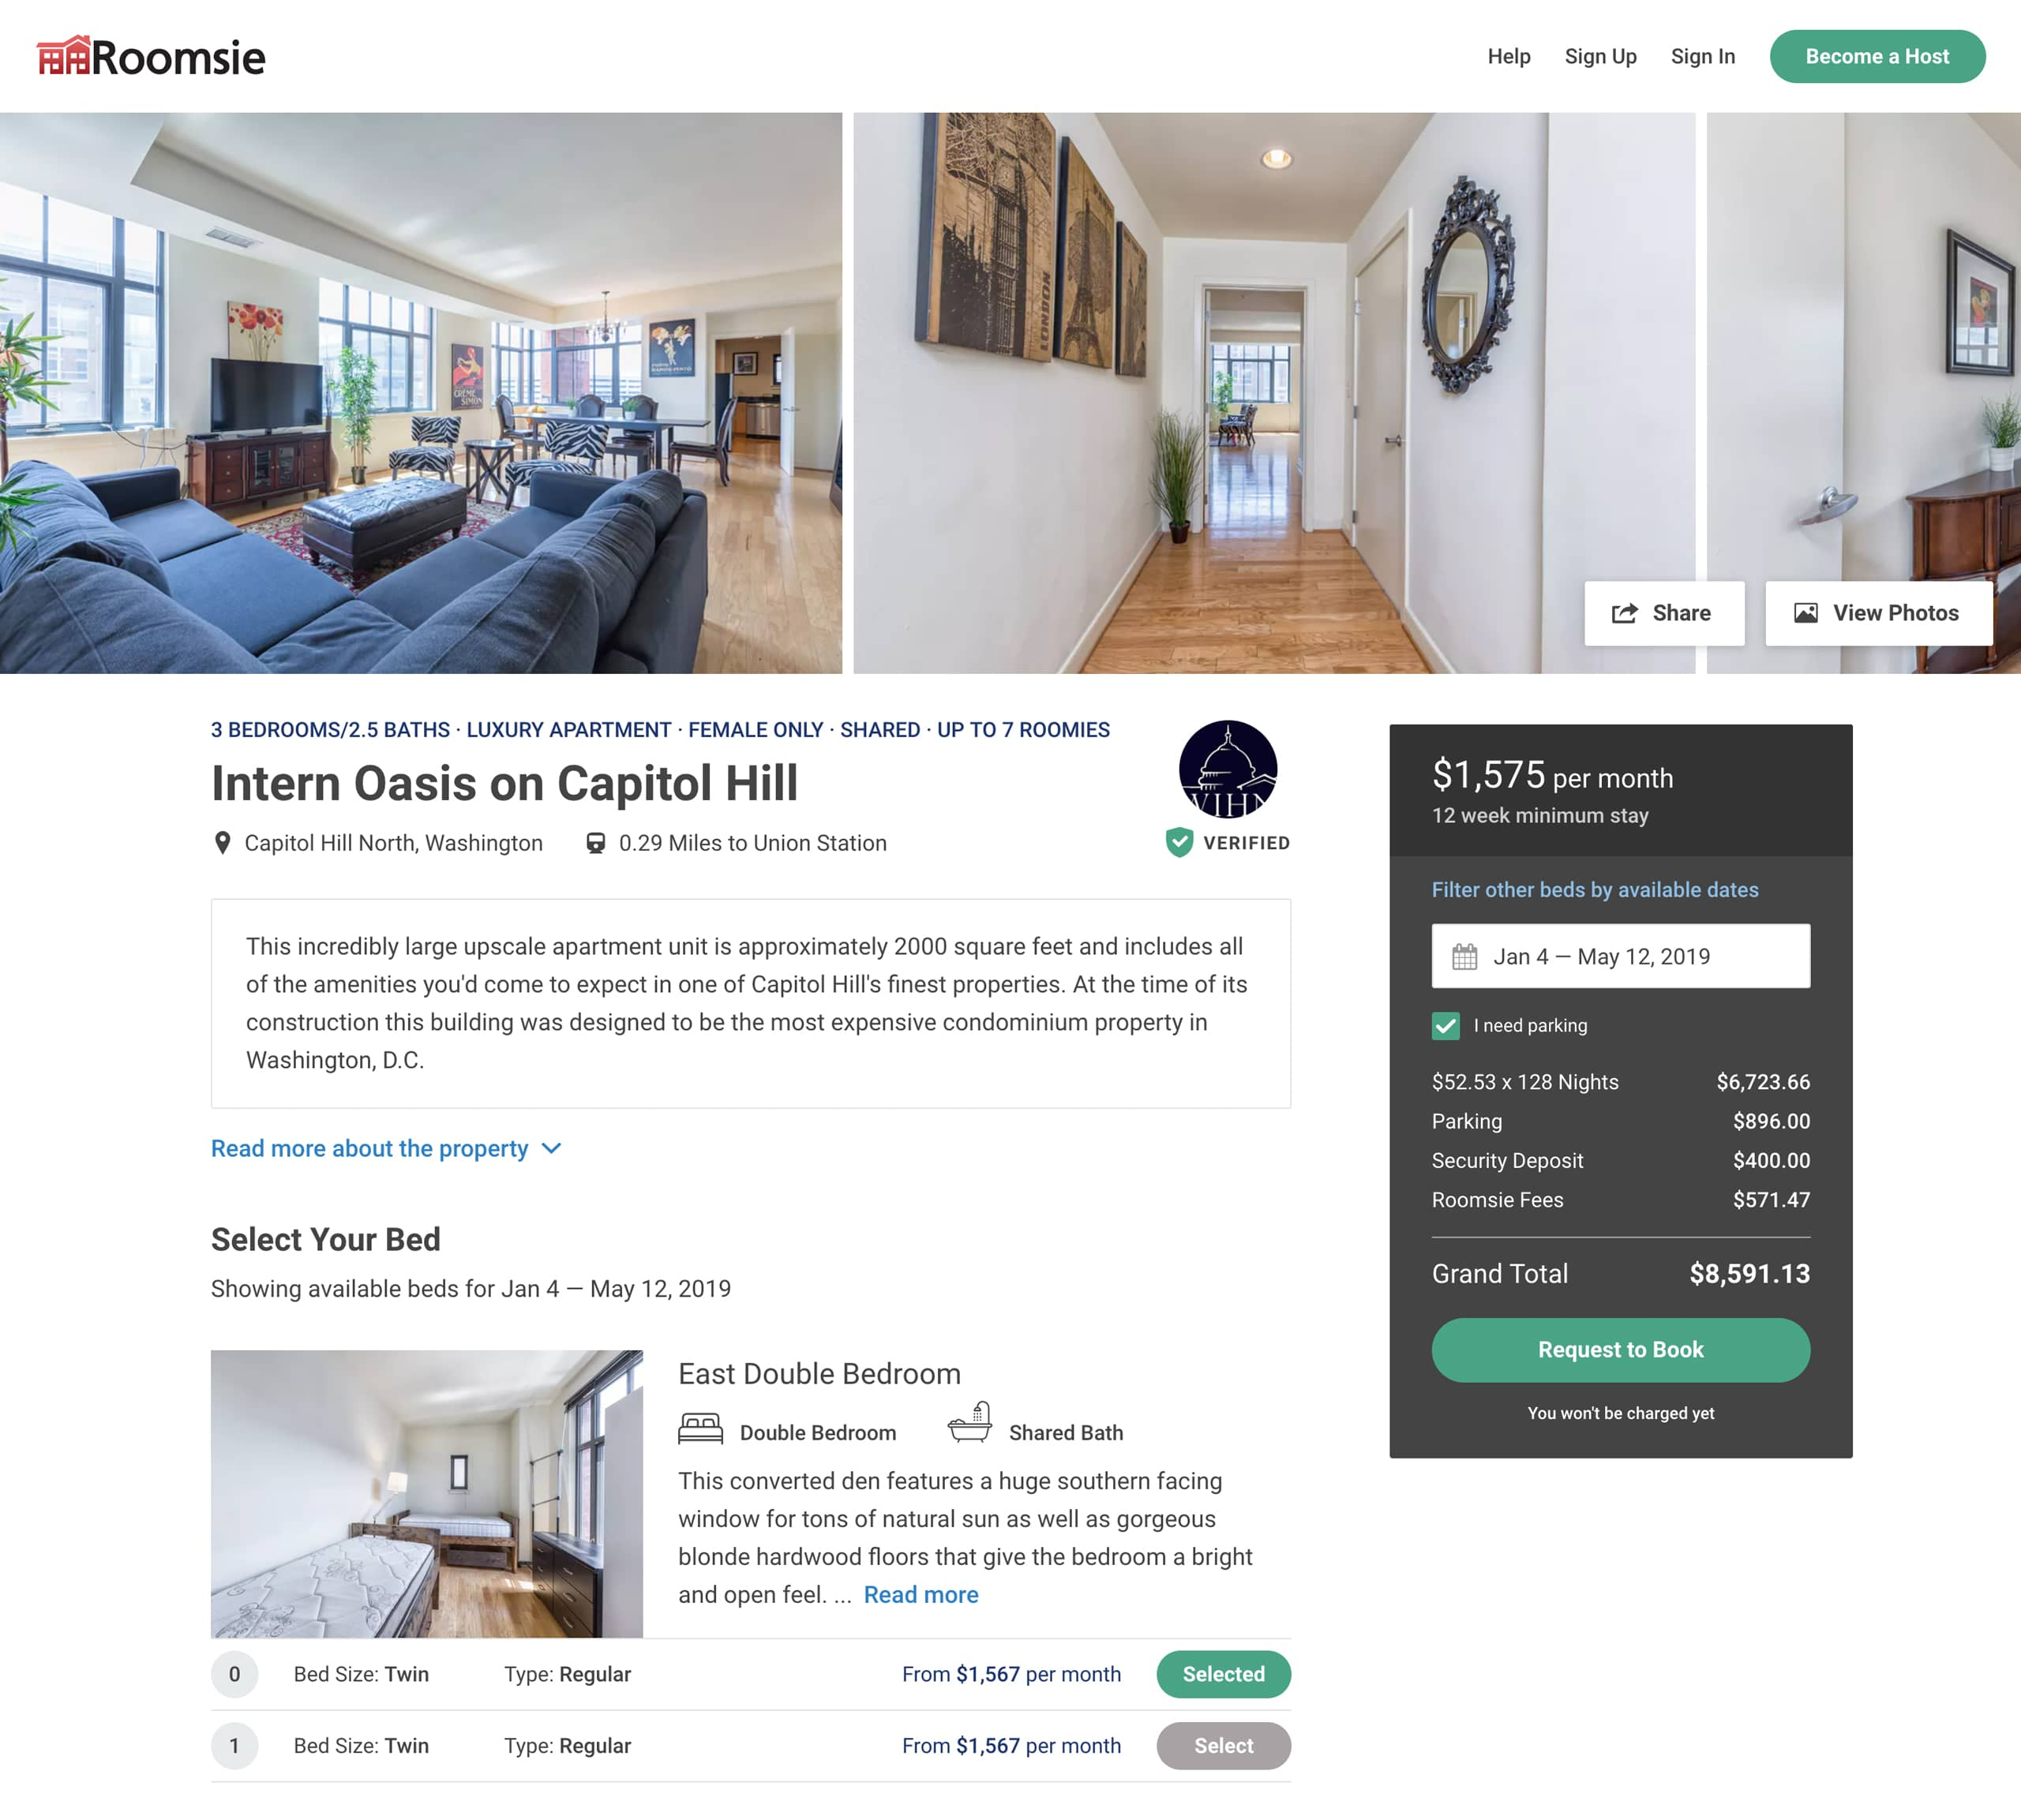 Property Page